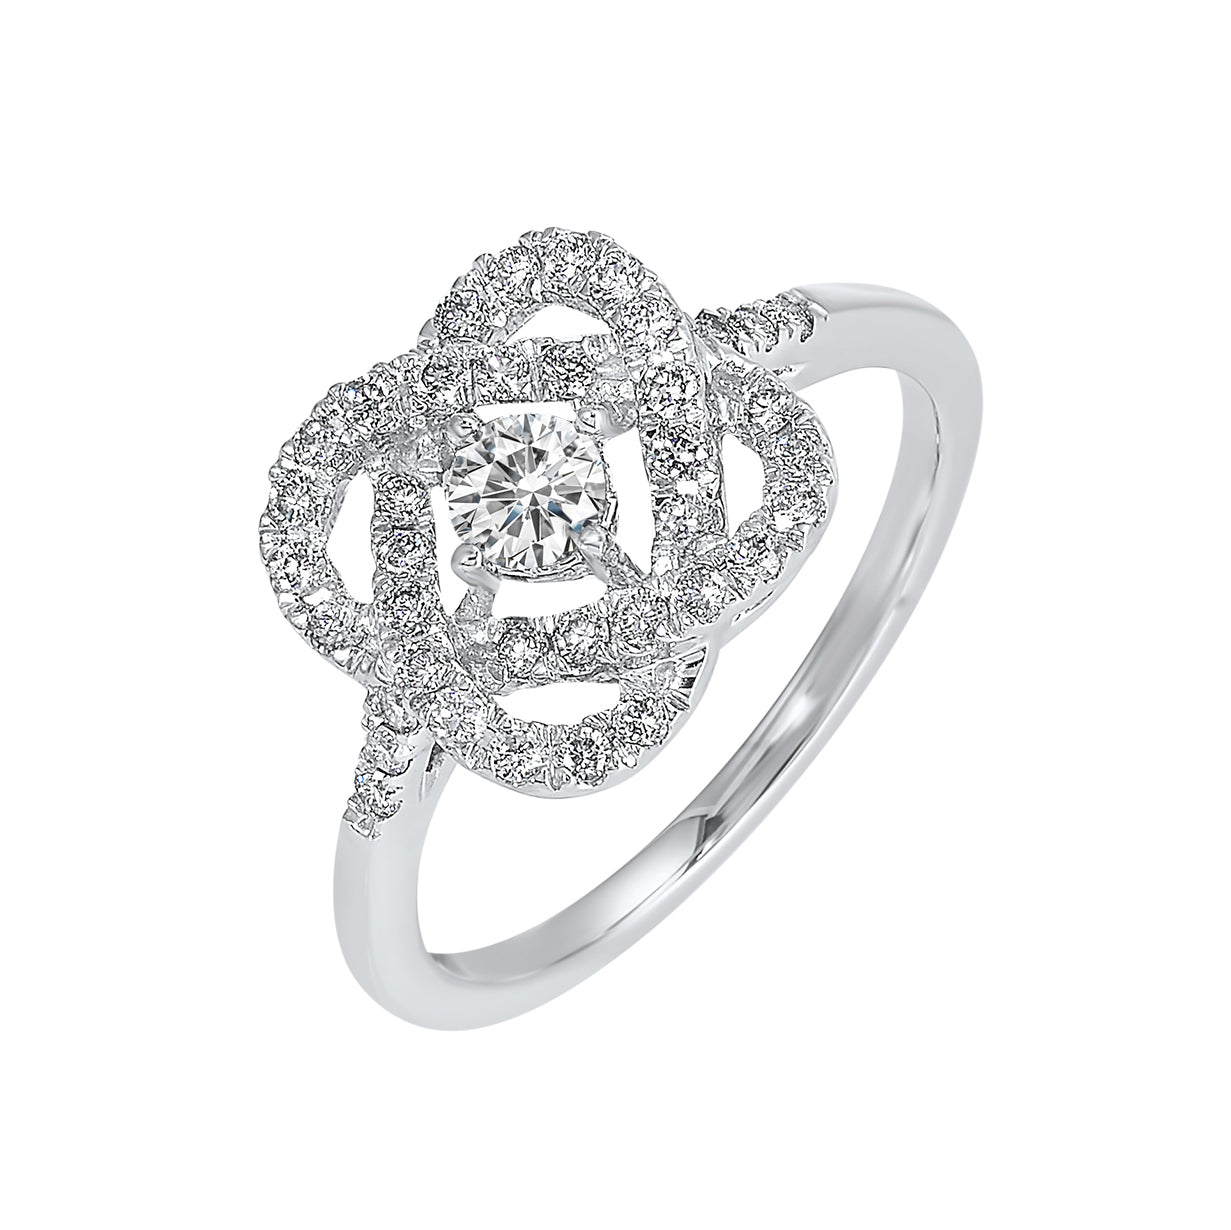 Love's Crossing Diamond Ring in 14K White Gold (1 ct. tw.)